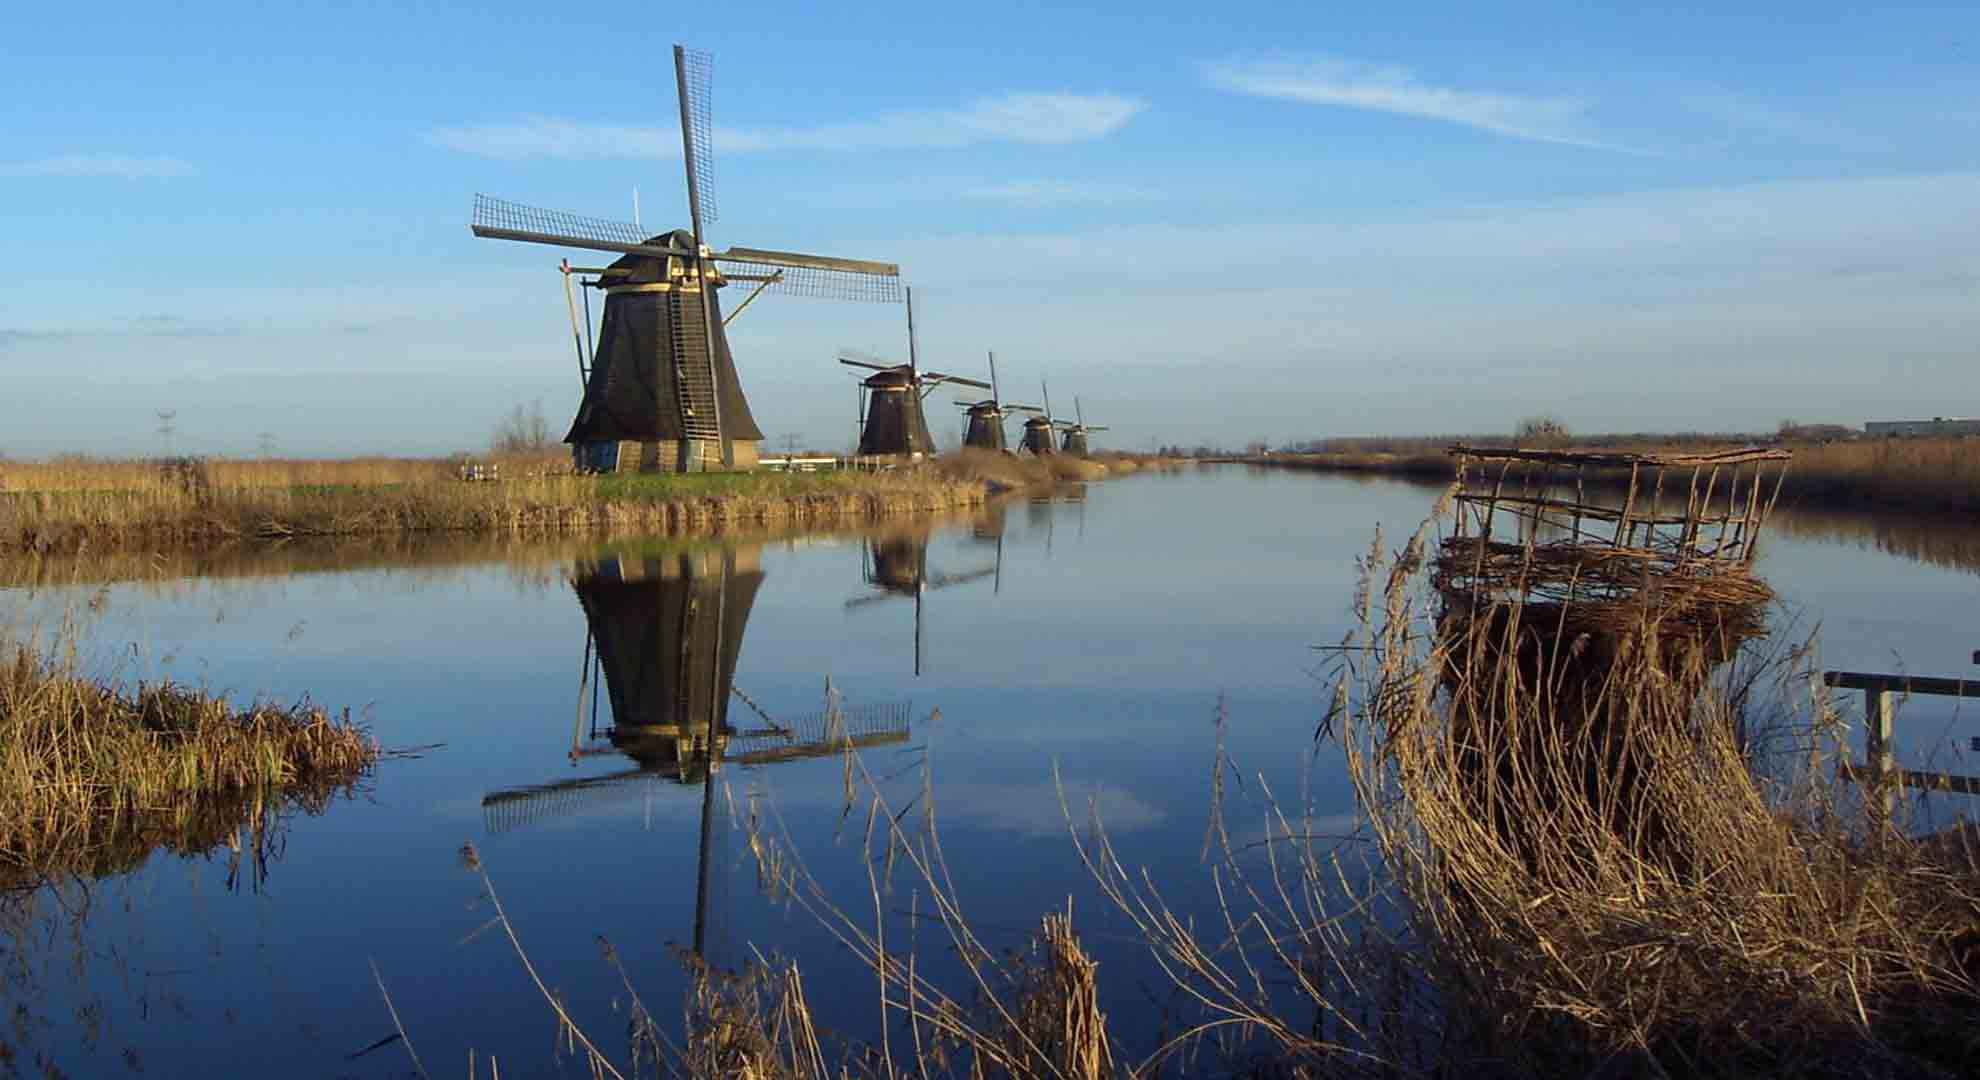 A typical windmill in the Netherlands: another example of a postindustrial building.